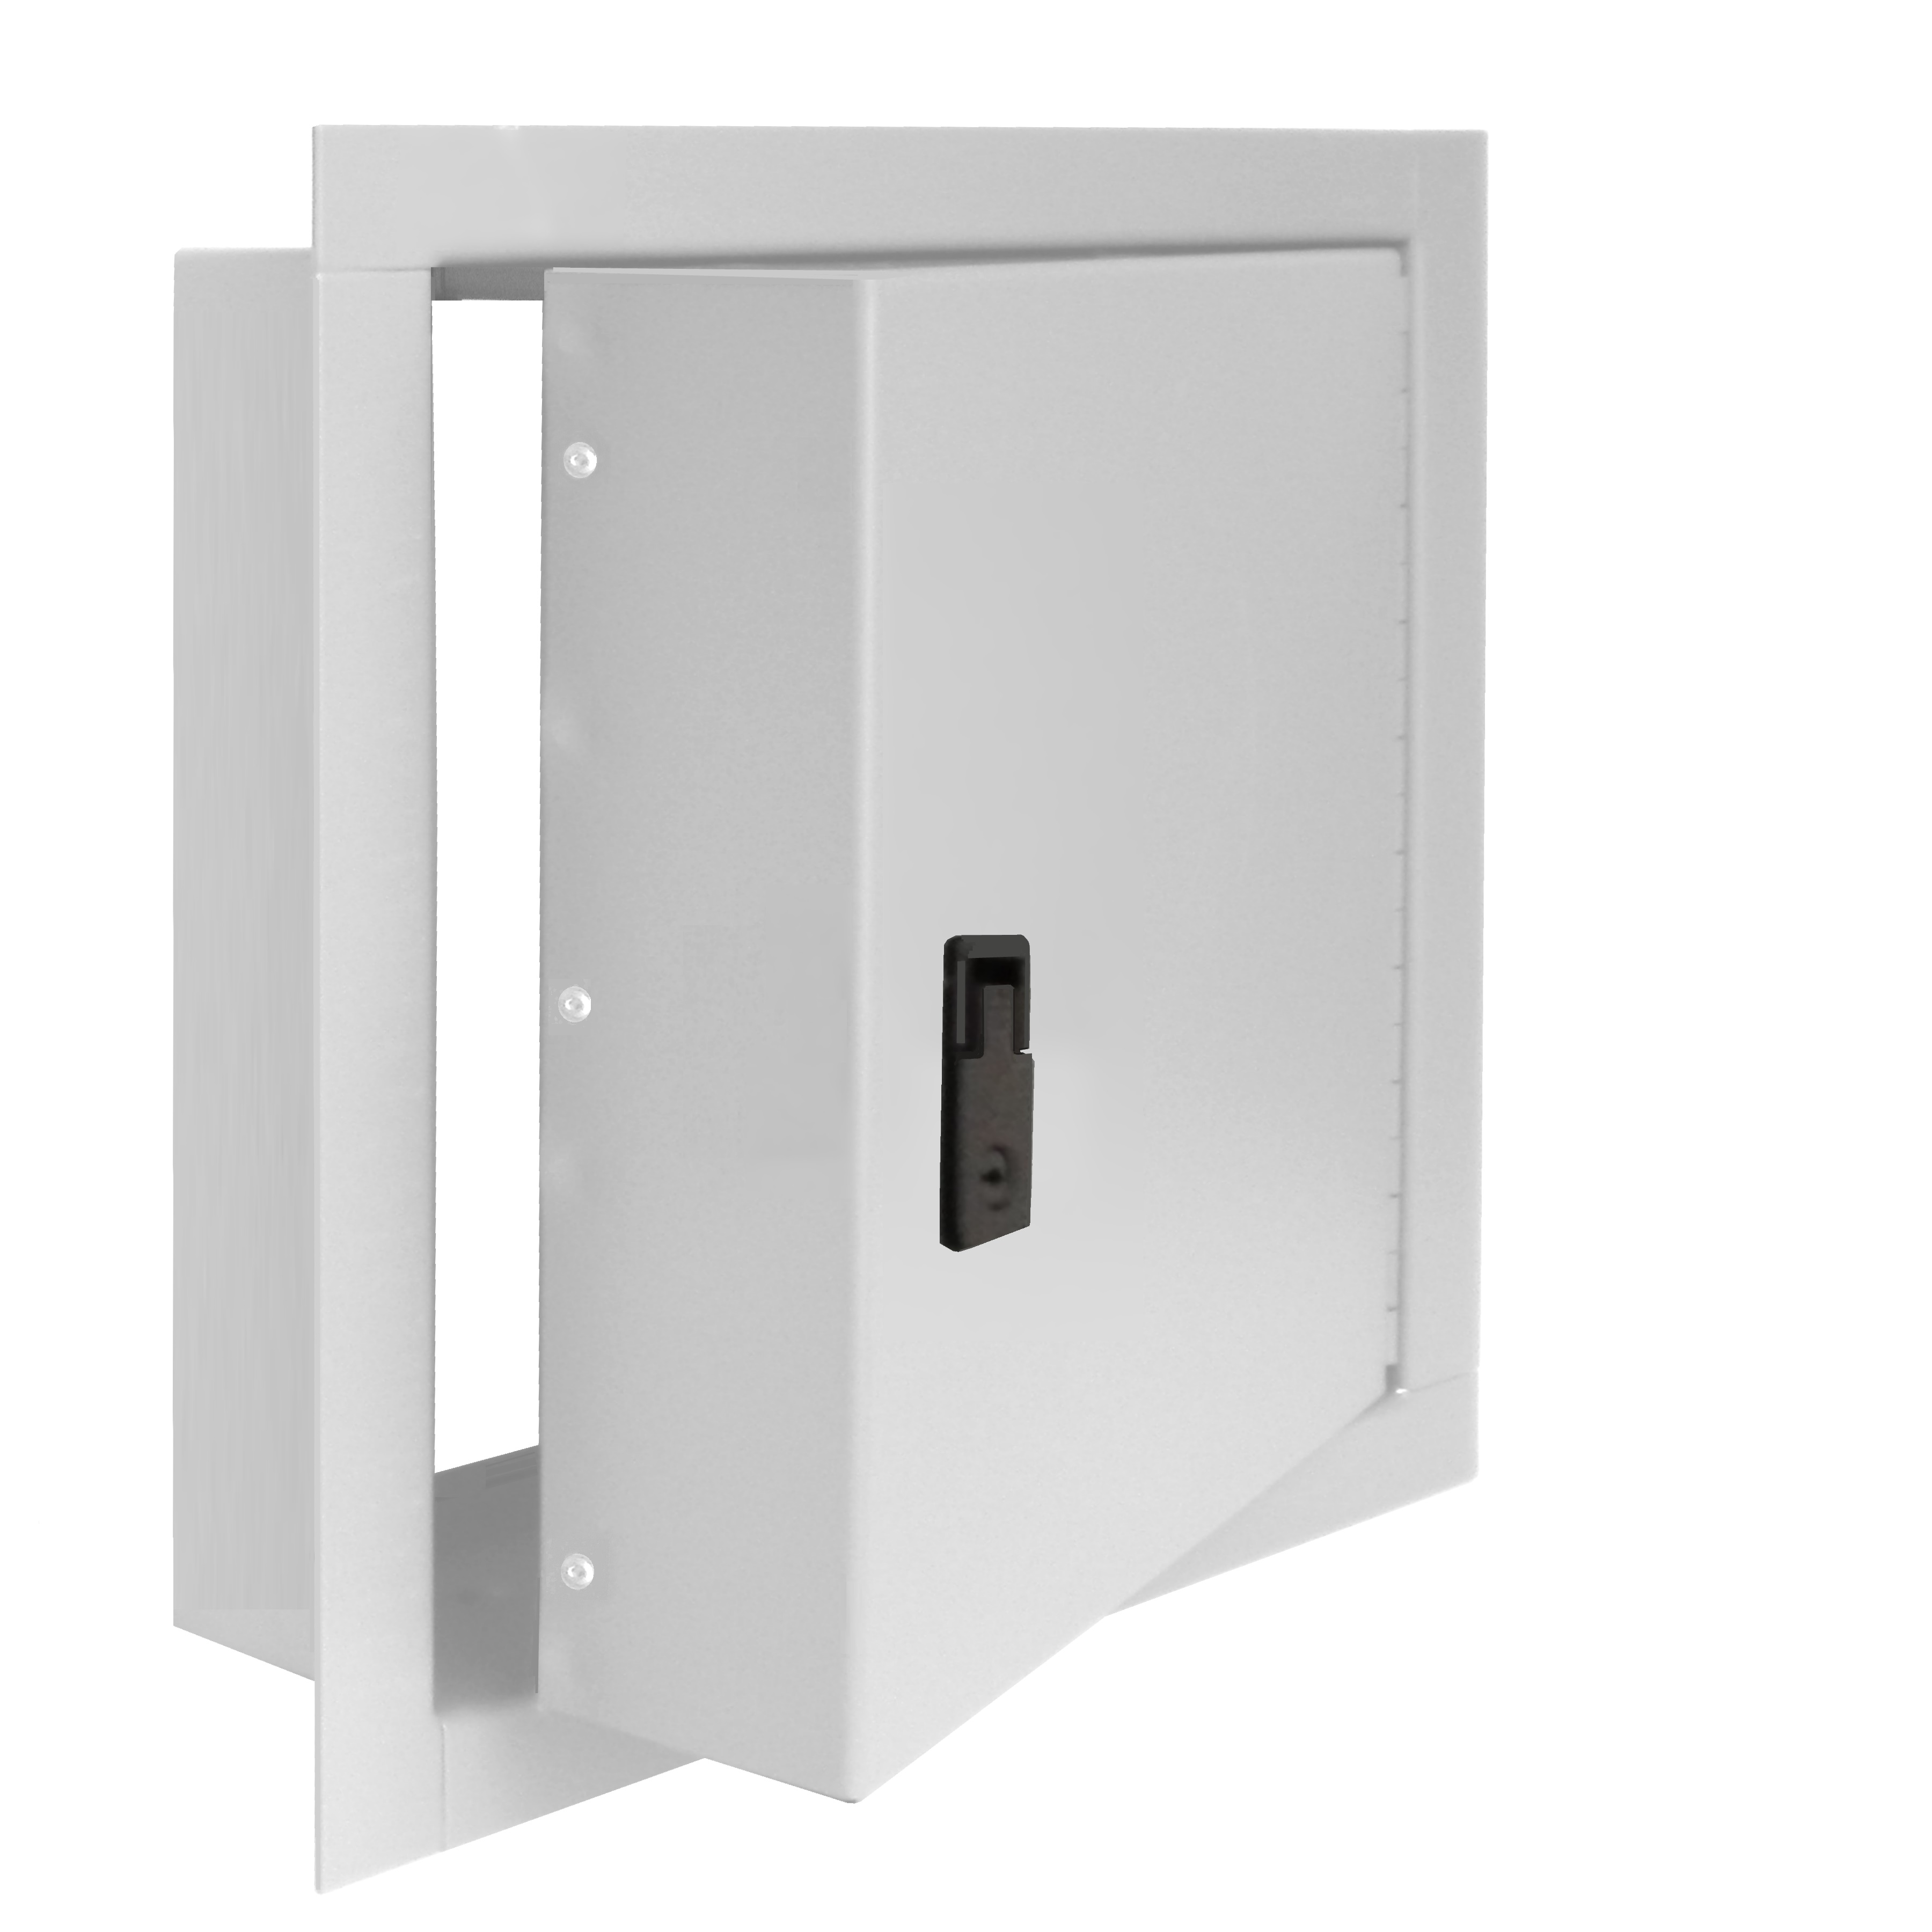 JL Industries STC - Sound Rated Access Door - As Low As  sc 1 st  Access Doors - Fire Extinguishers - In Stock! & Access Doors - Fire Extinguishers - In Stock!